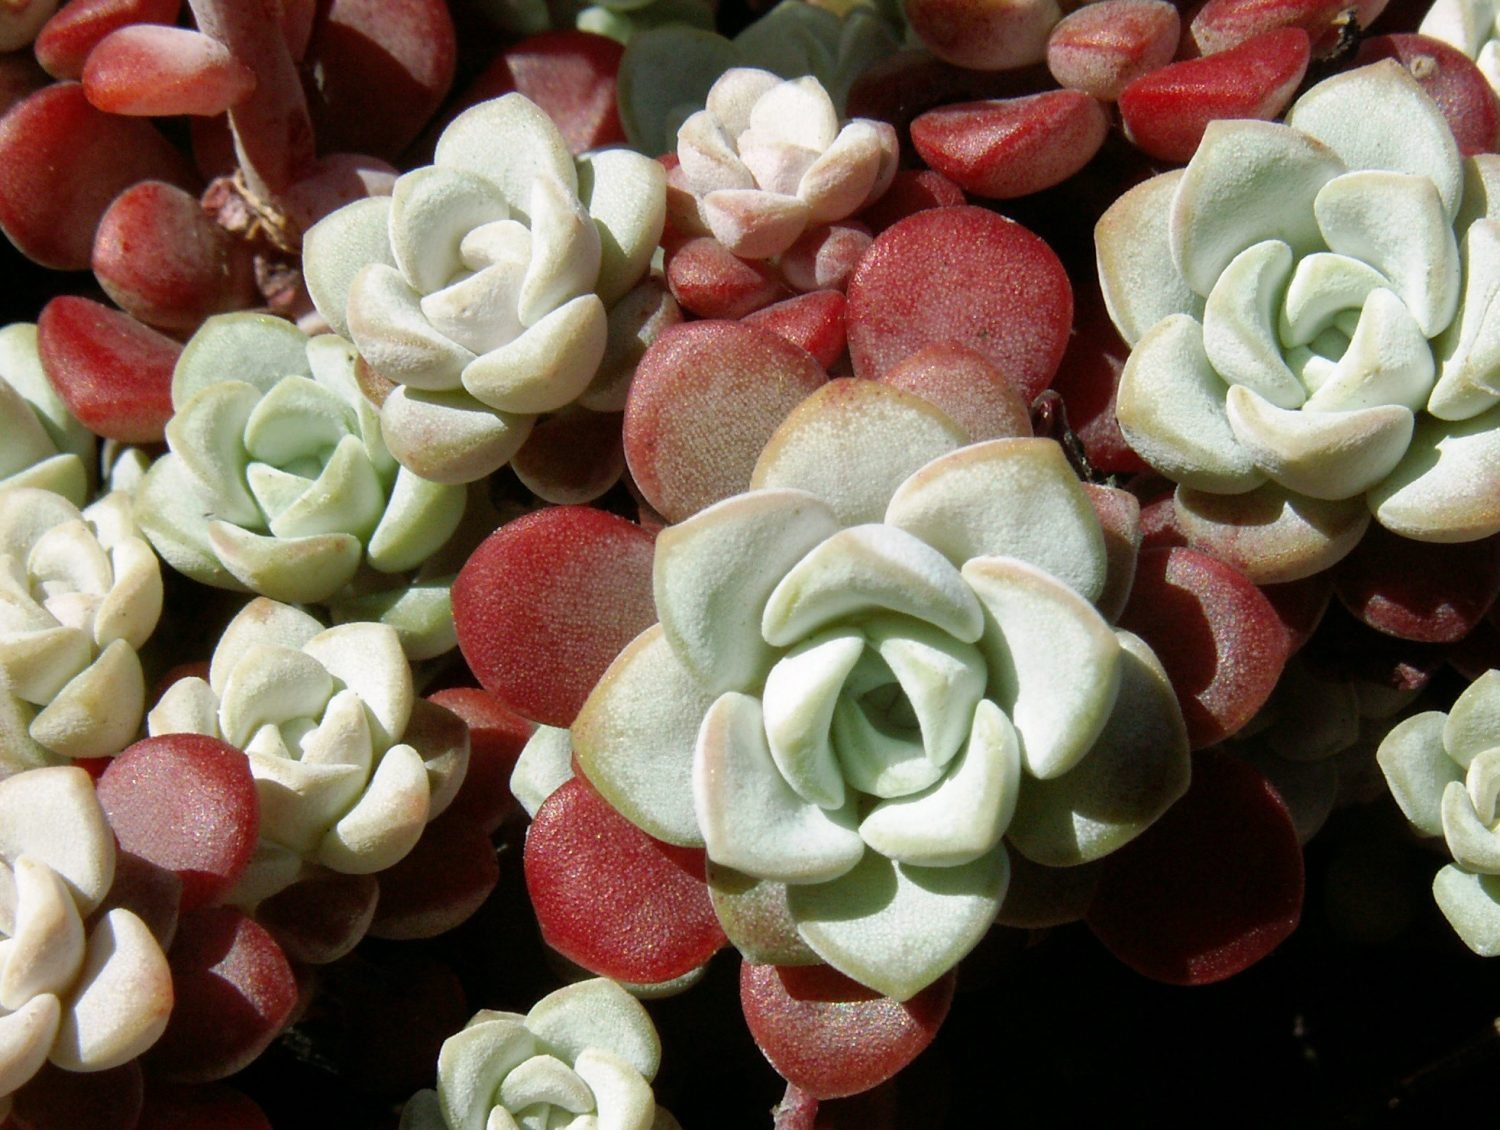 Flora Locale is a good resource for information about plants to encourage bio-diversity